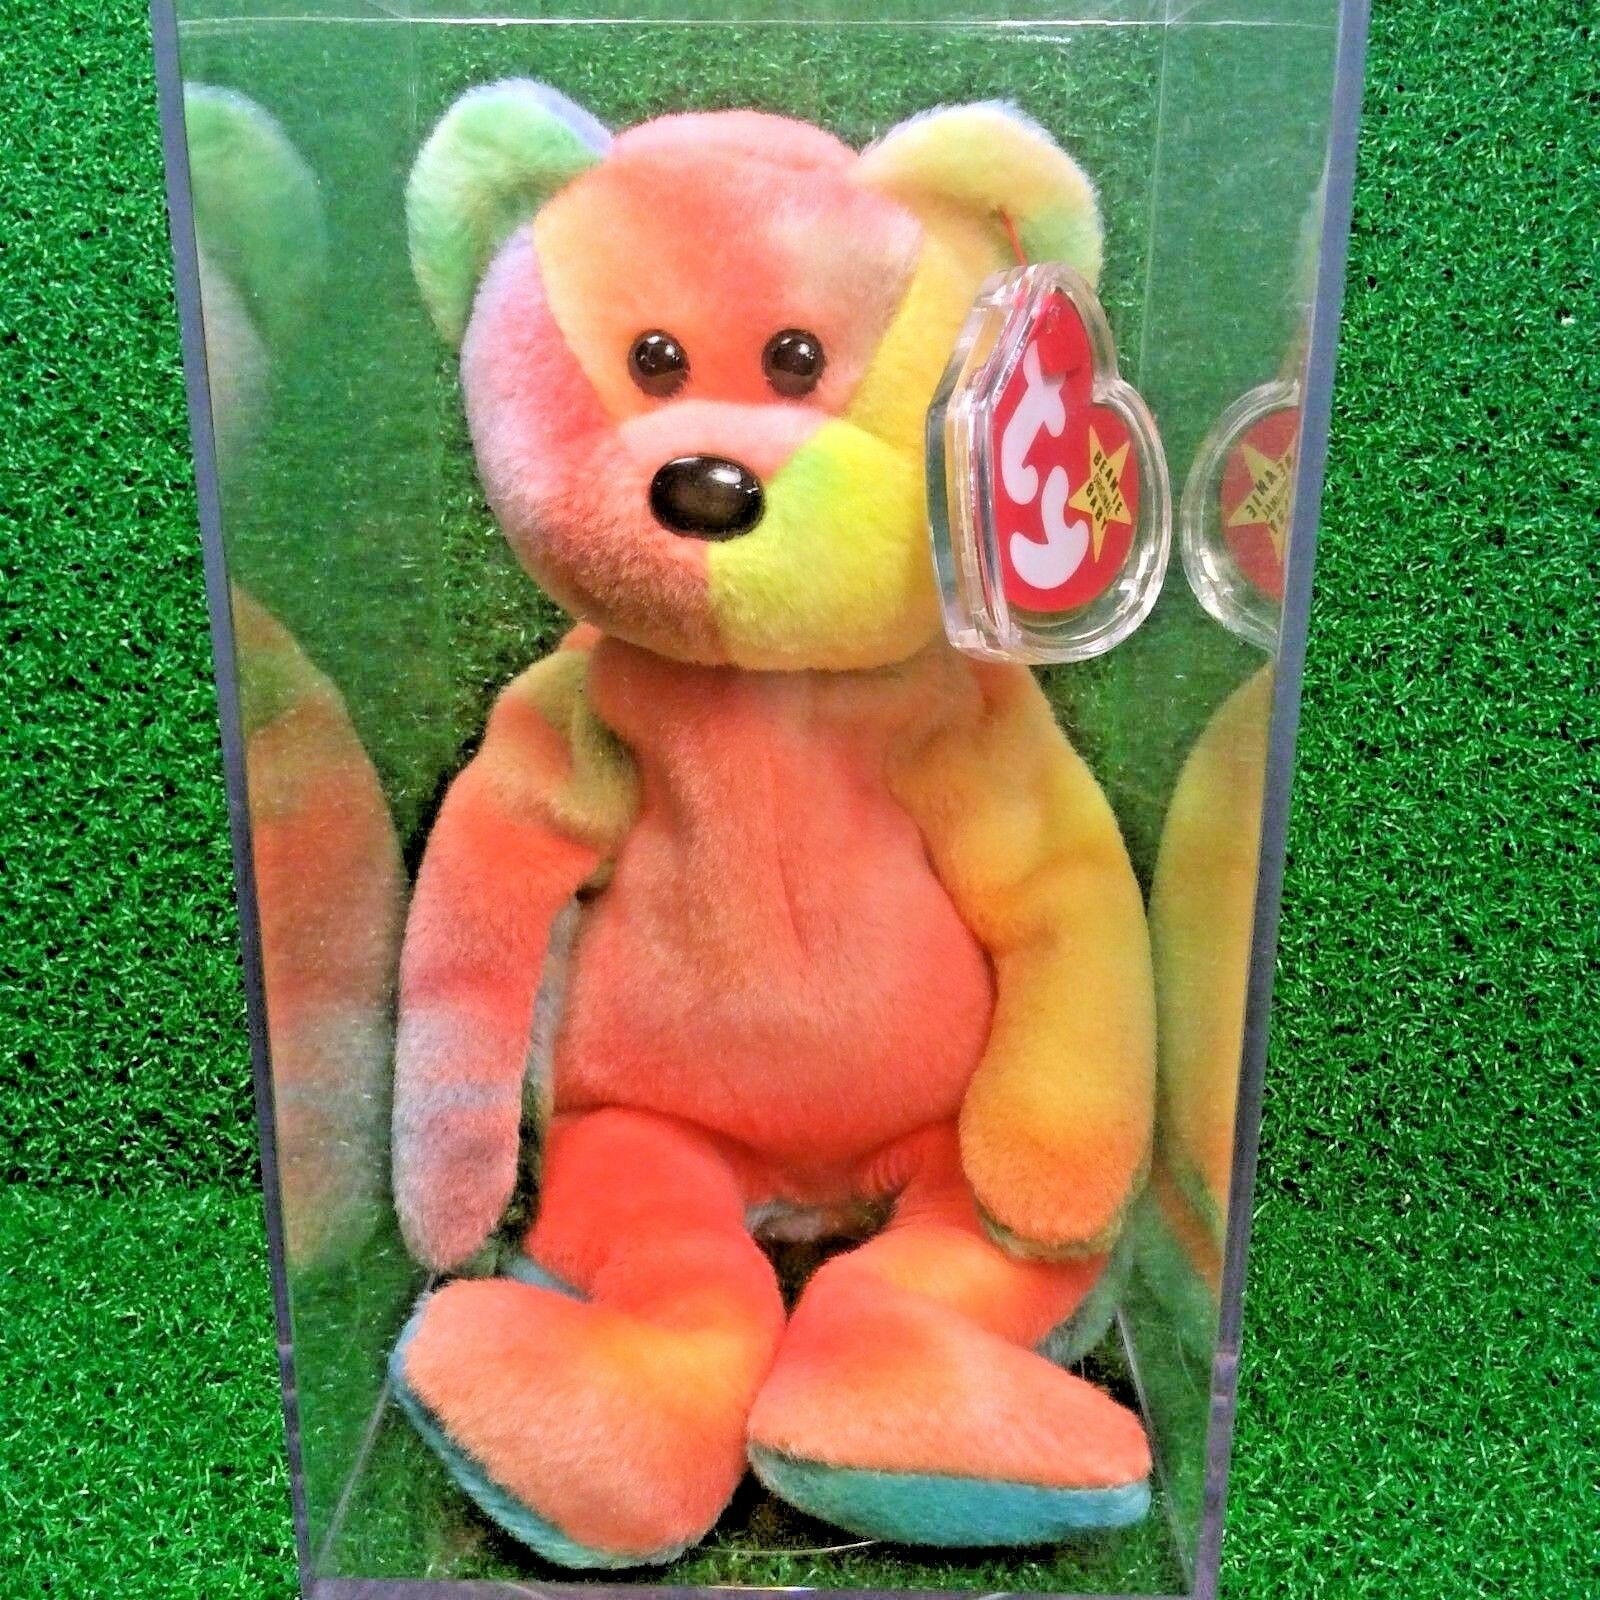 Very RARE 1993 Garcia The Bear Retired Ty Beanie Baby MWMT PVC Numerous  Errors 아이템 넘버  112647213024.   dea639381